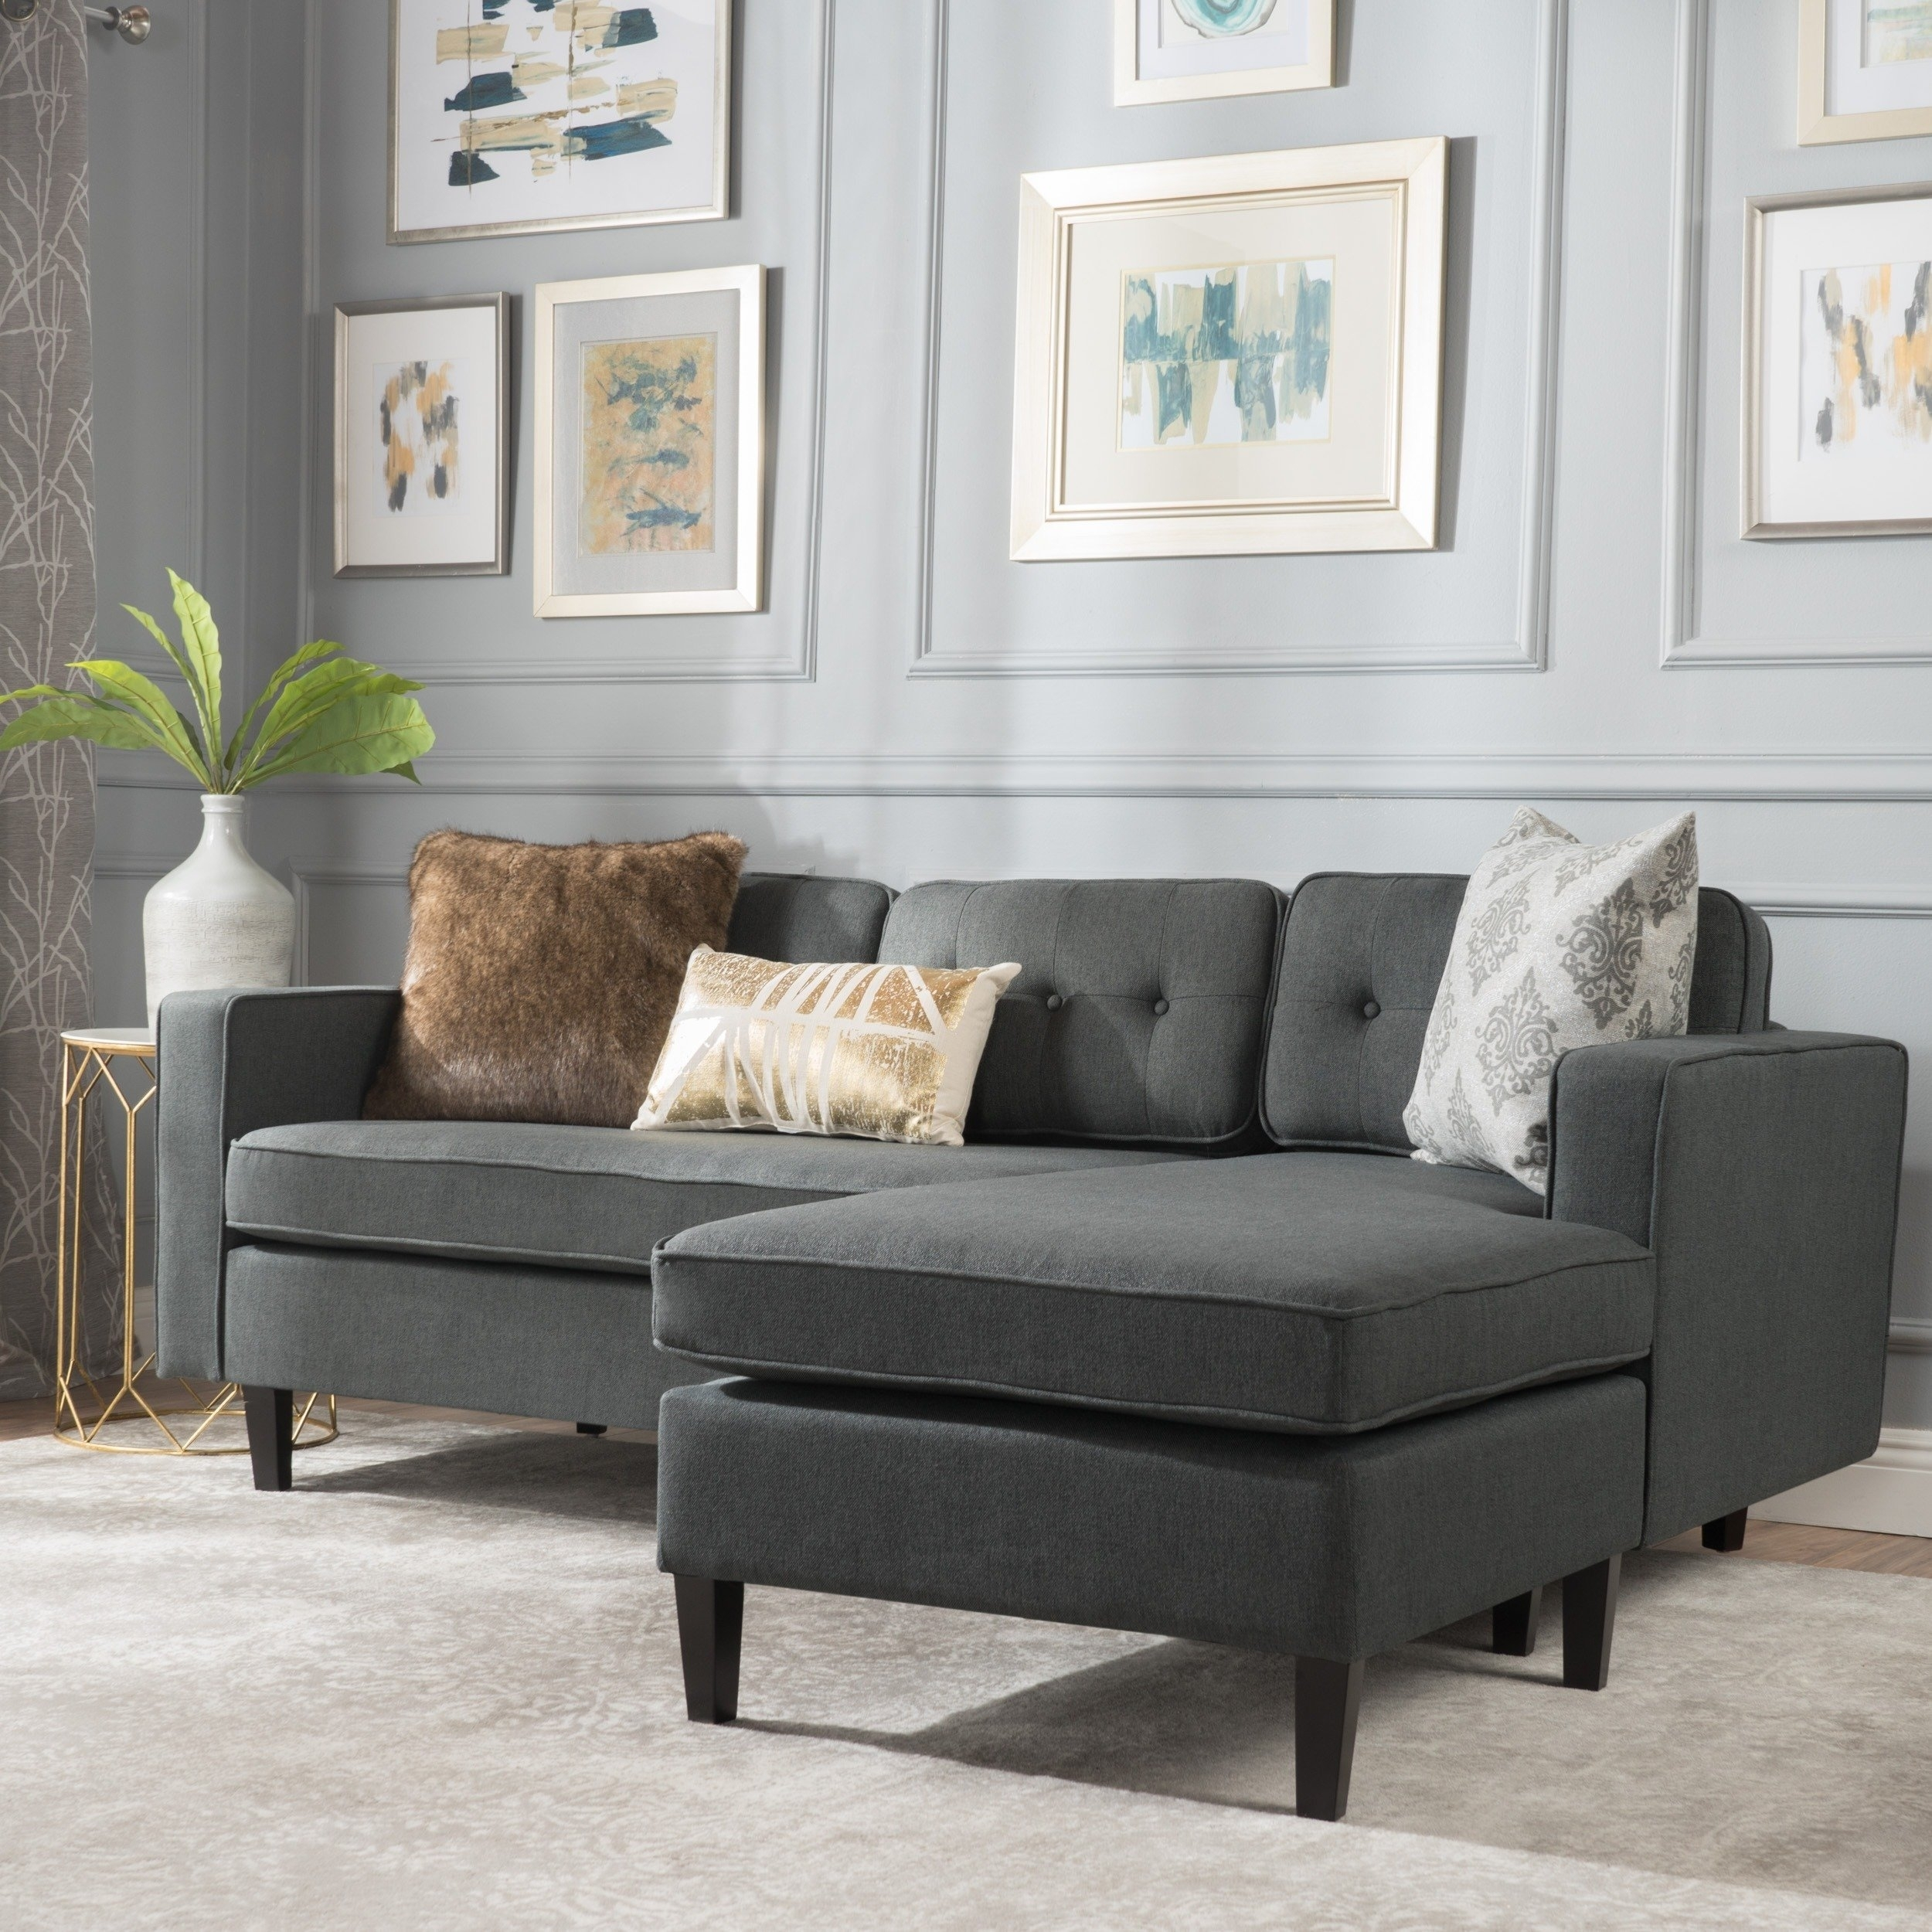 2 Piece Chaise Sectional Sofa | Baci Living Room Pertaining To Tenny Dark Grey 2 Piece Right Facing Chaise Sectionals With 2 Headrest (View 17 of 25)